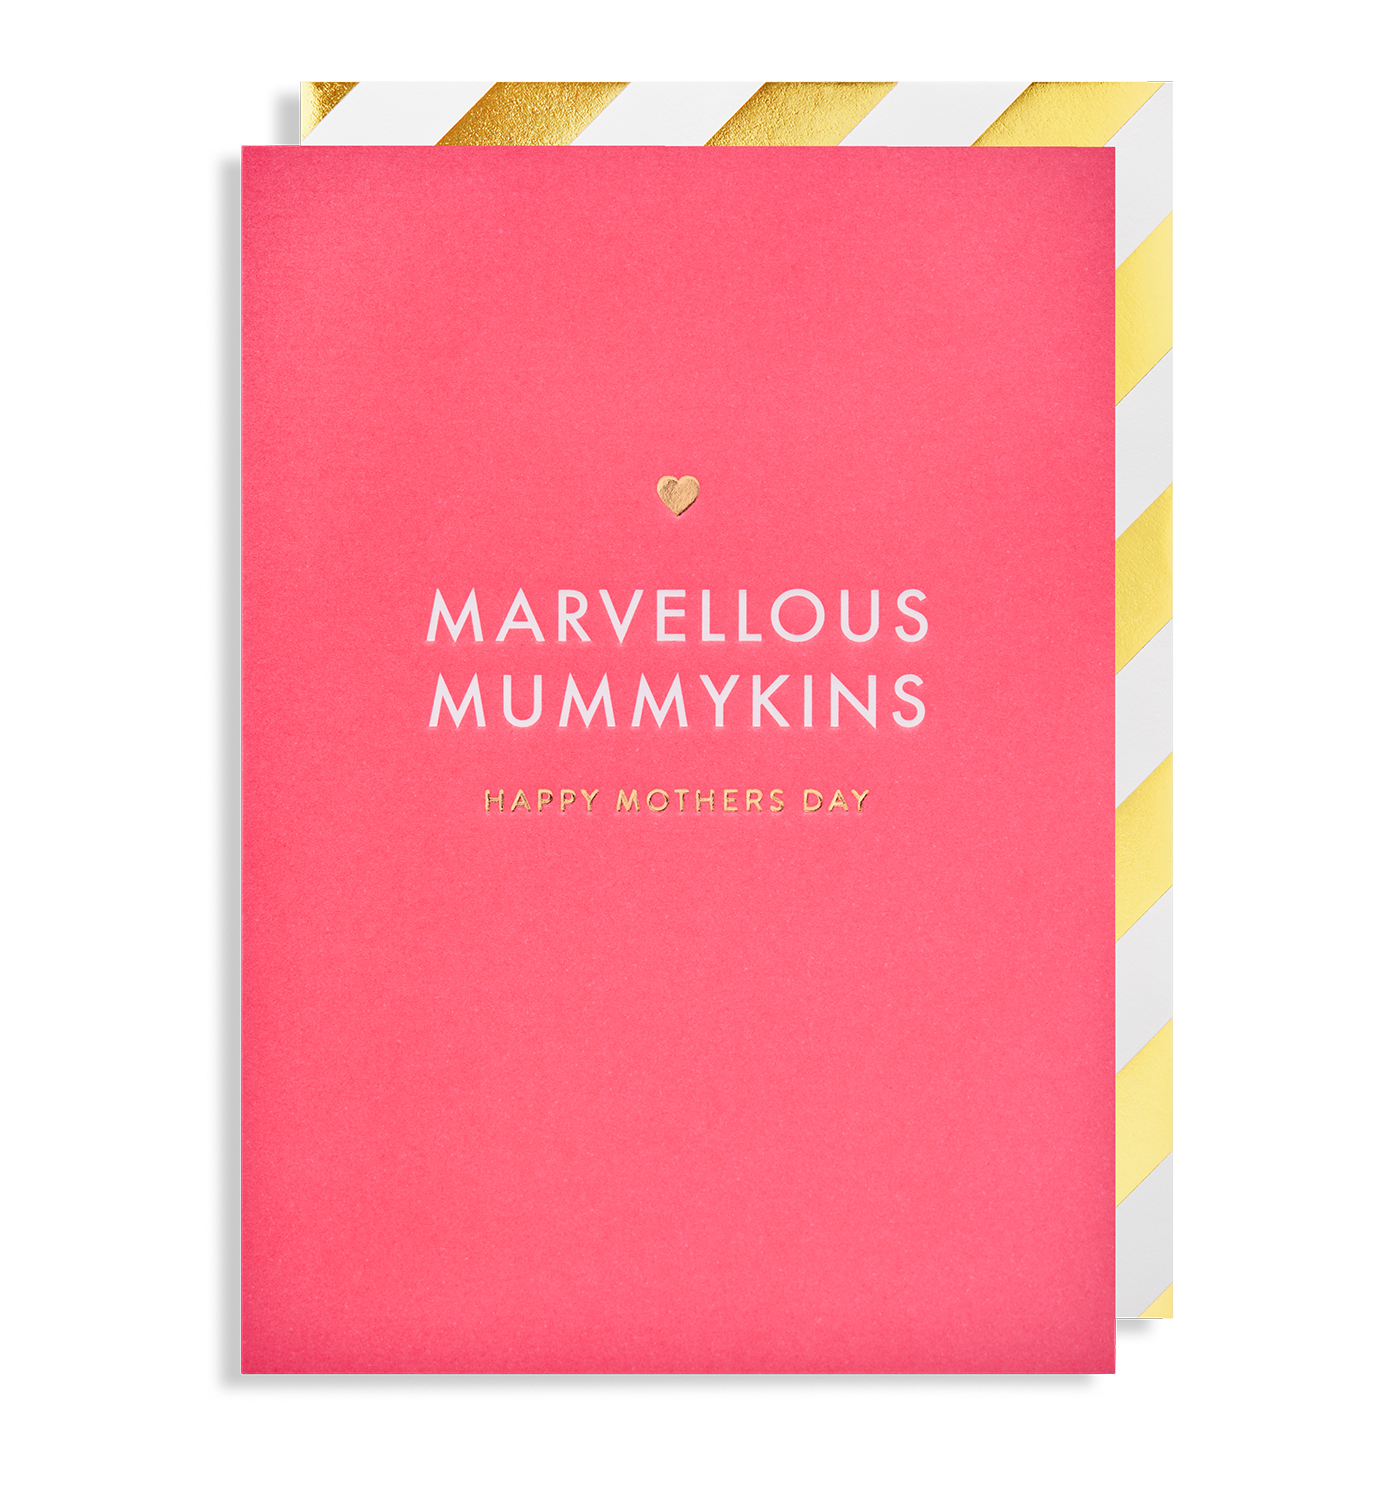 Marvellous Mummykins Happy Mothers Day Greeting Card By Postco